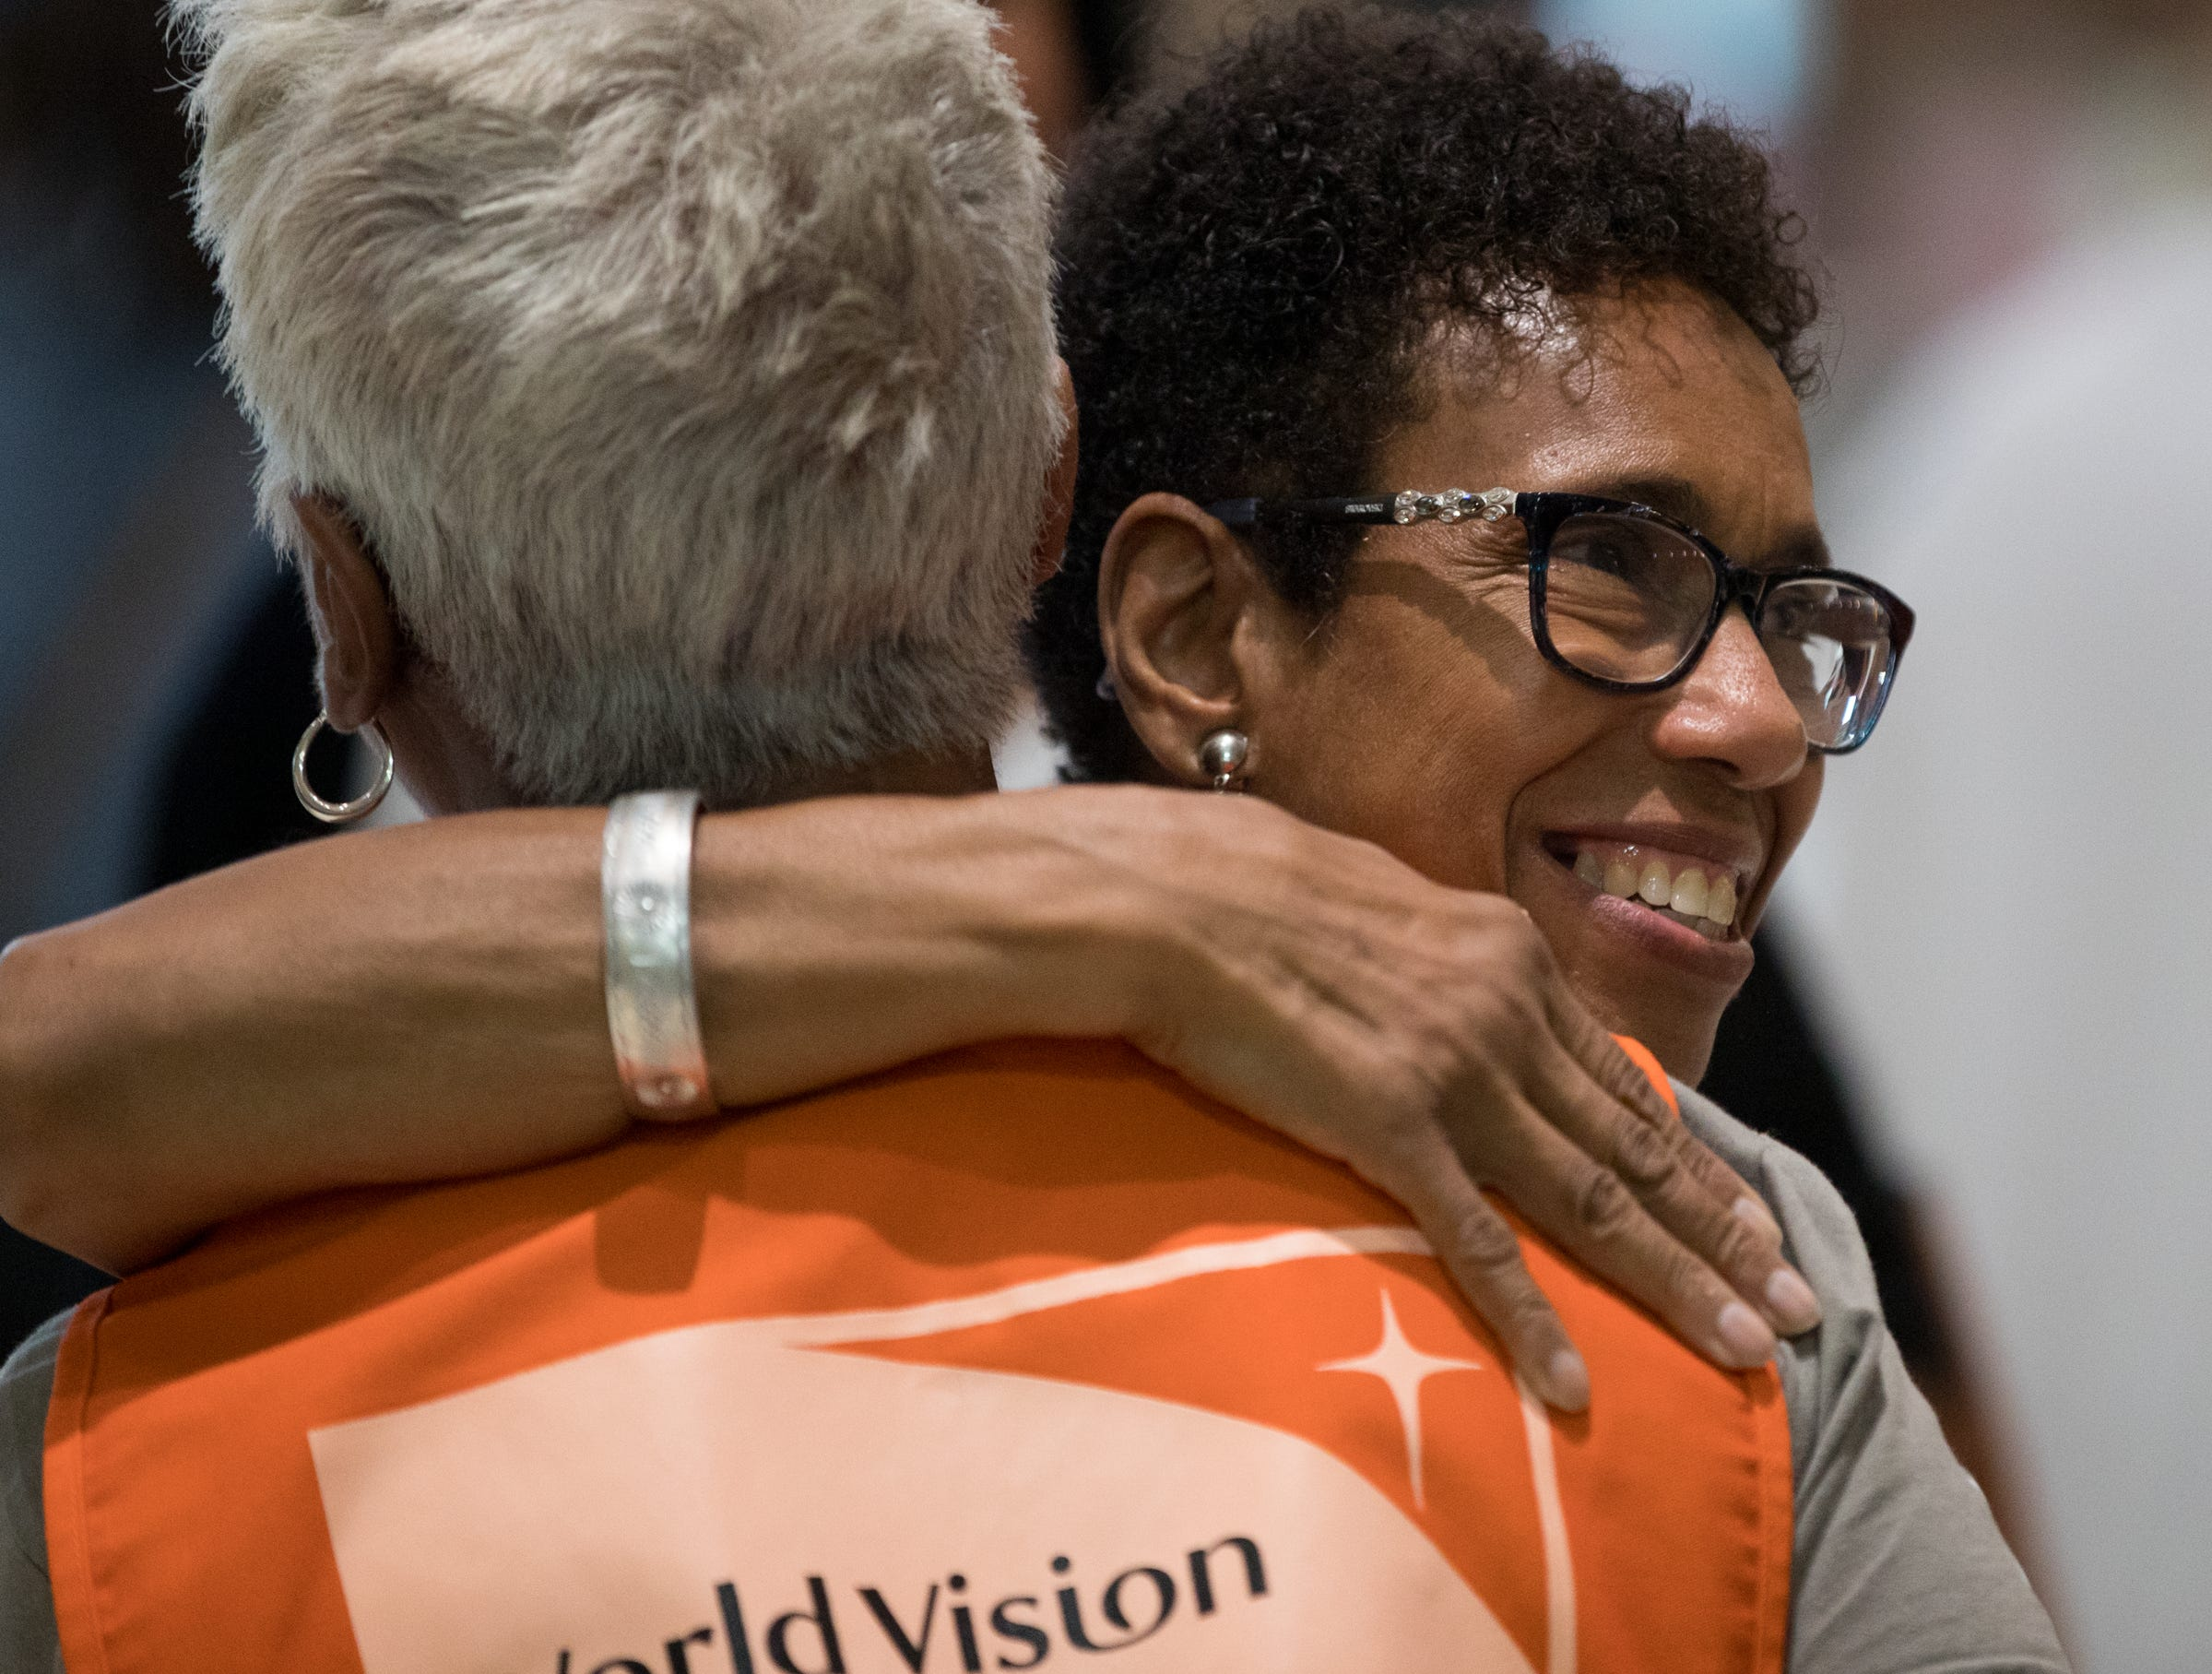 Agnes Shelton (right) gives a hug to Sabae Martin, both of Indianapolis, about an hour before the Osteen event at Bankers Life Fieldhouse, Indianapolis, Friday, Aug. 10, 2018. The event, dubbed Night of Hope with Joel and Victoria, drew about 8,000 people to the arena for the event with the Houston-based televangelist.